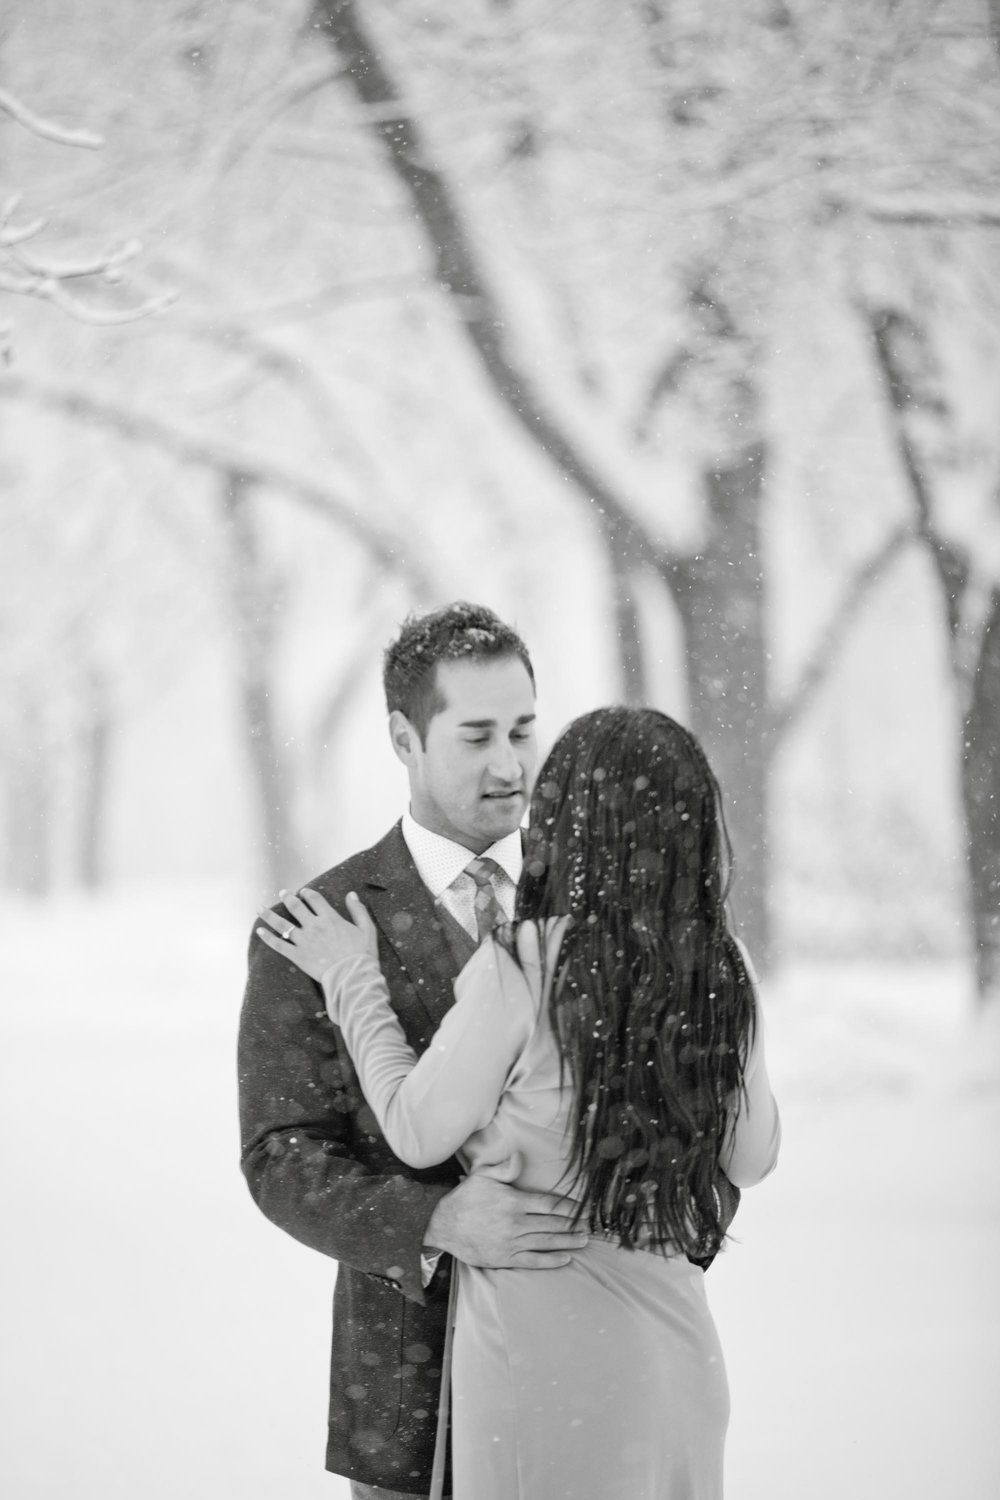 nataschia_wielink_photography_niagara_on_the_lake_engagement_session_vanessa_matt 0015 .JPG